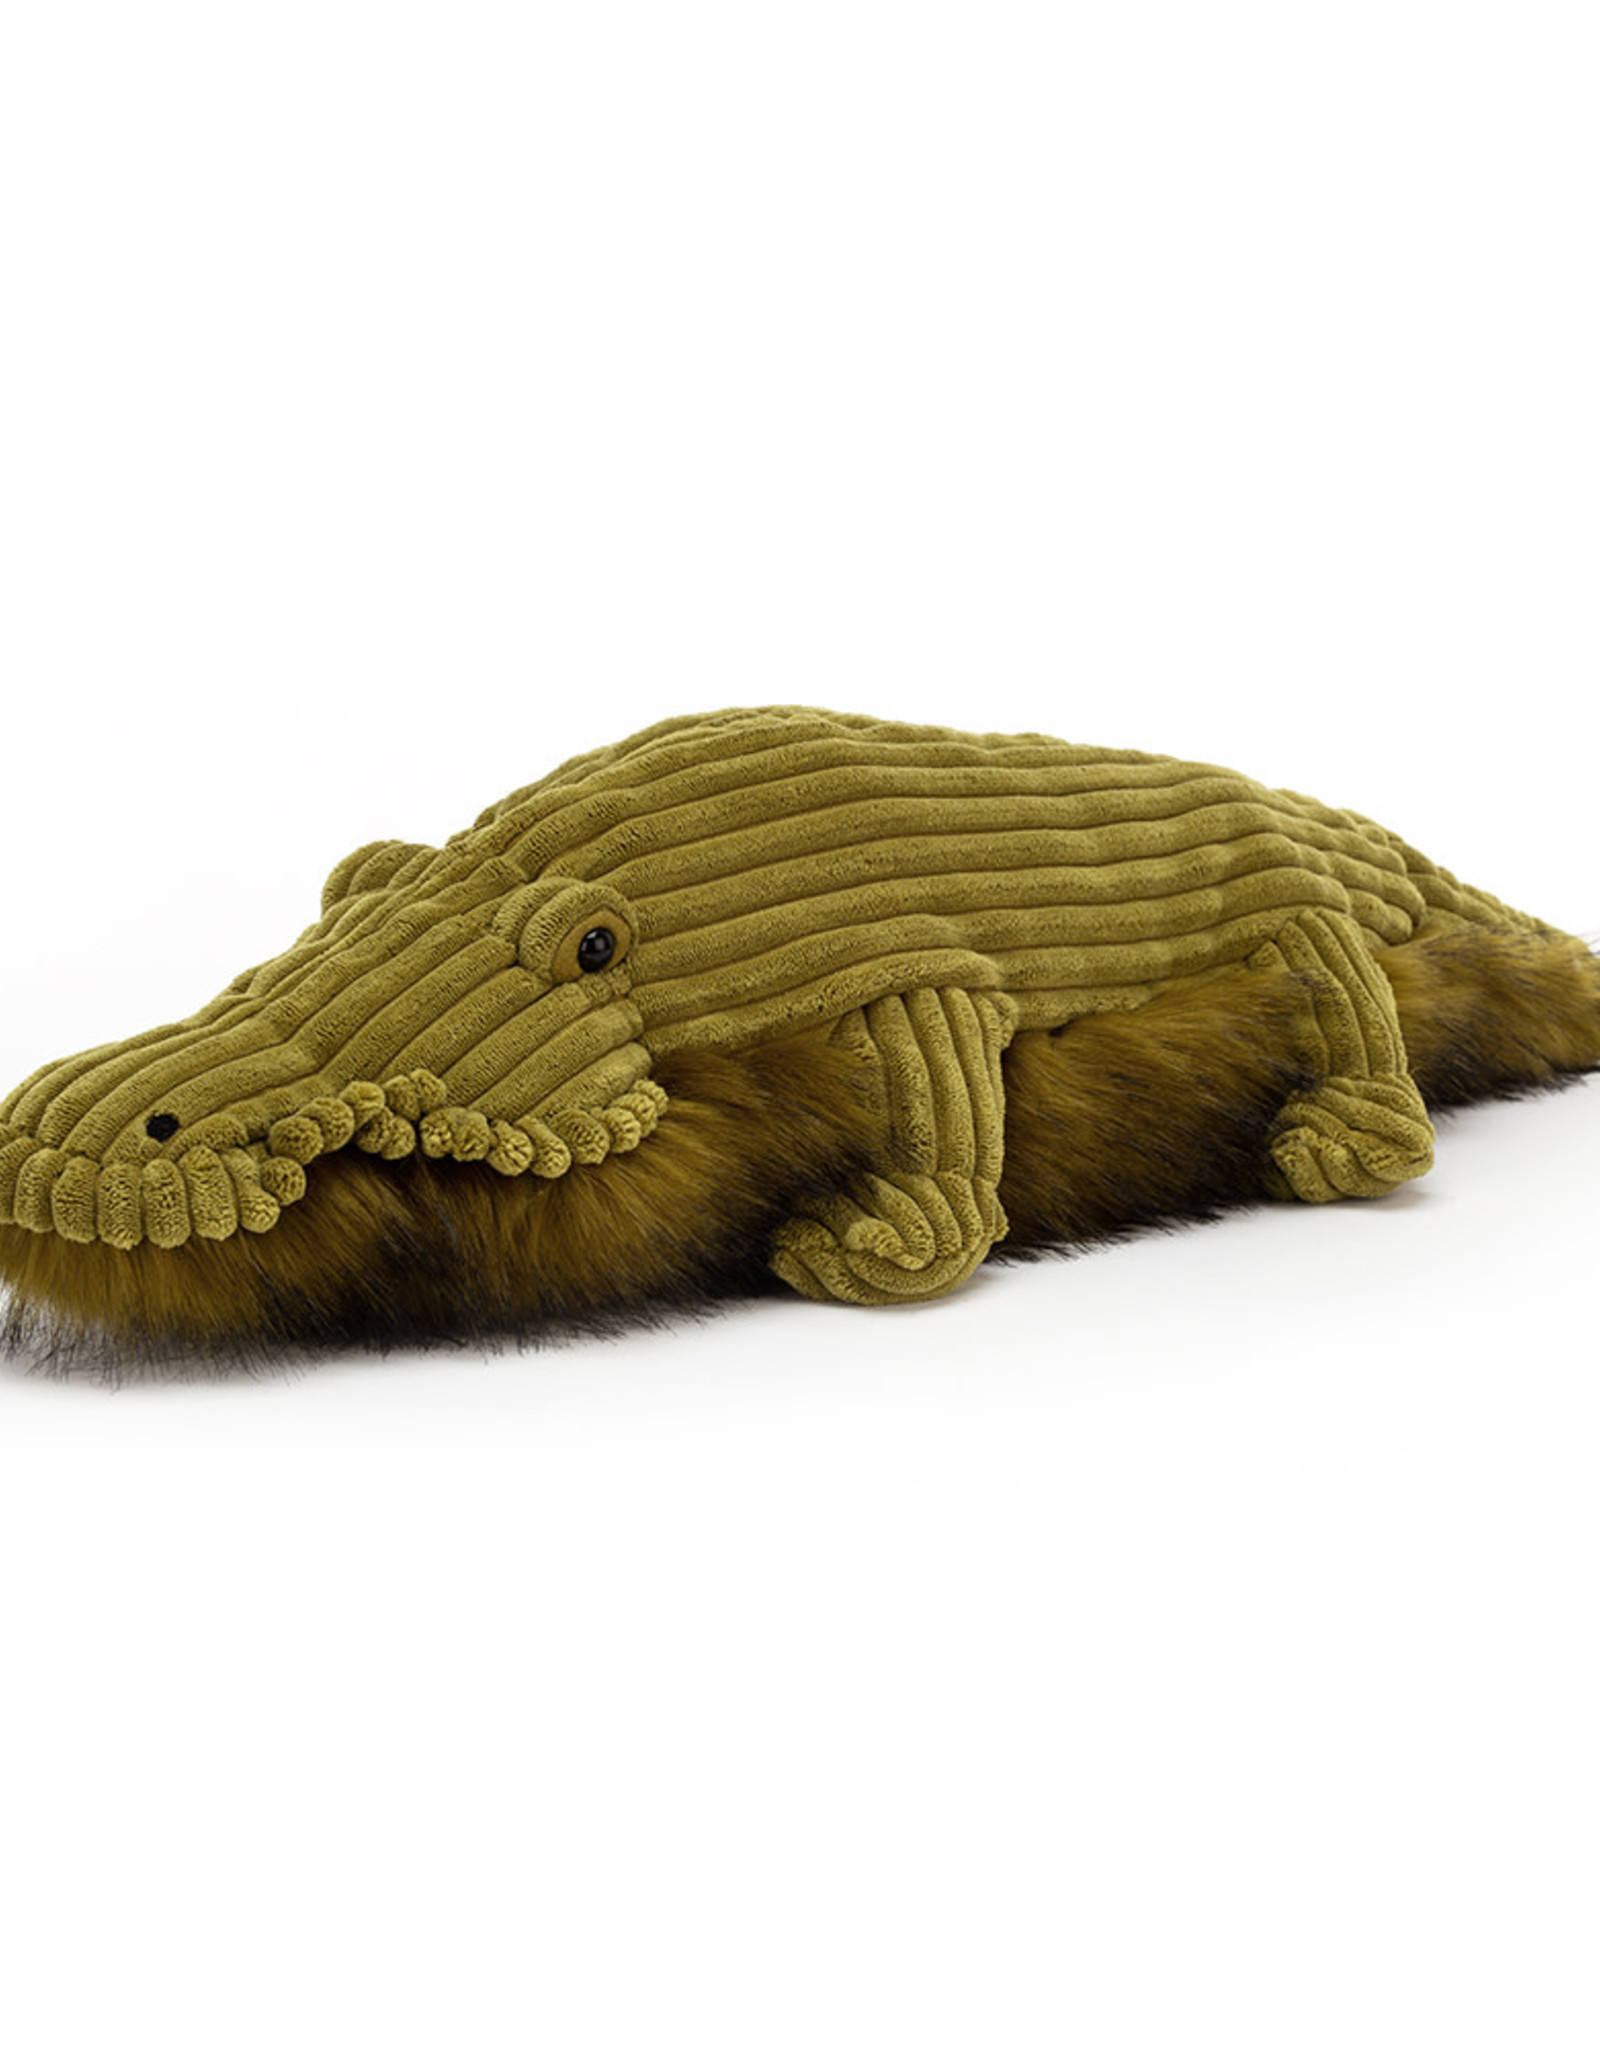 JellyCat Jellycat Willey Croc